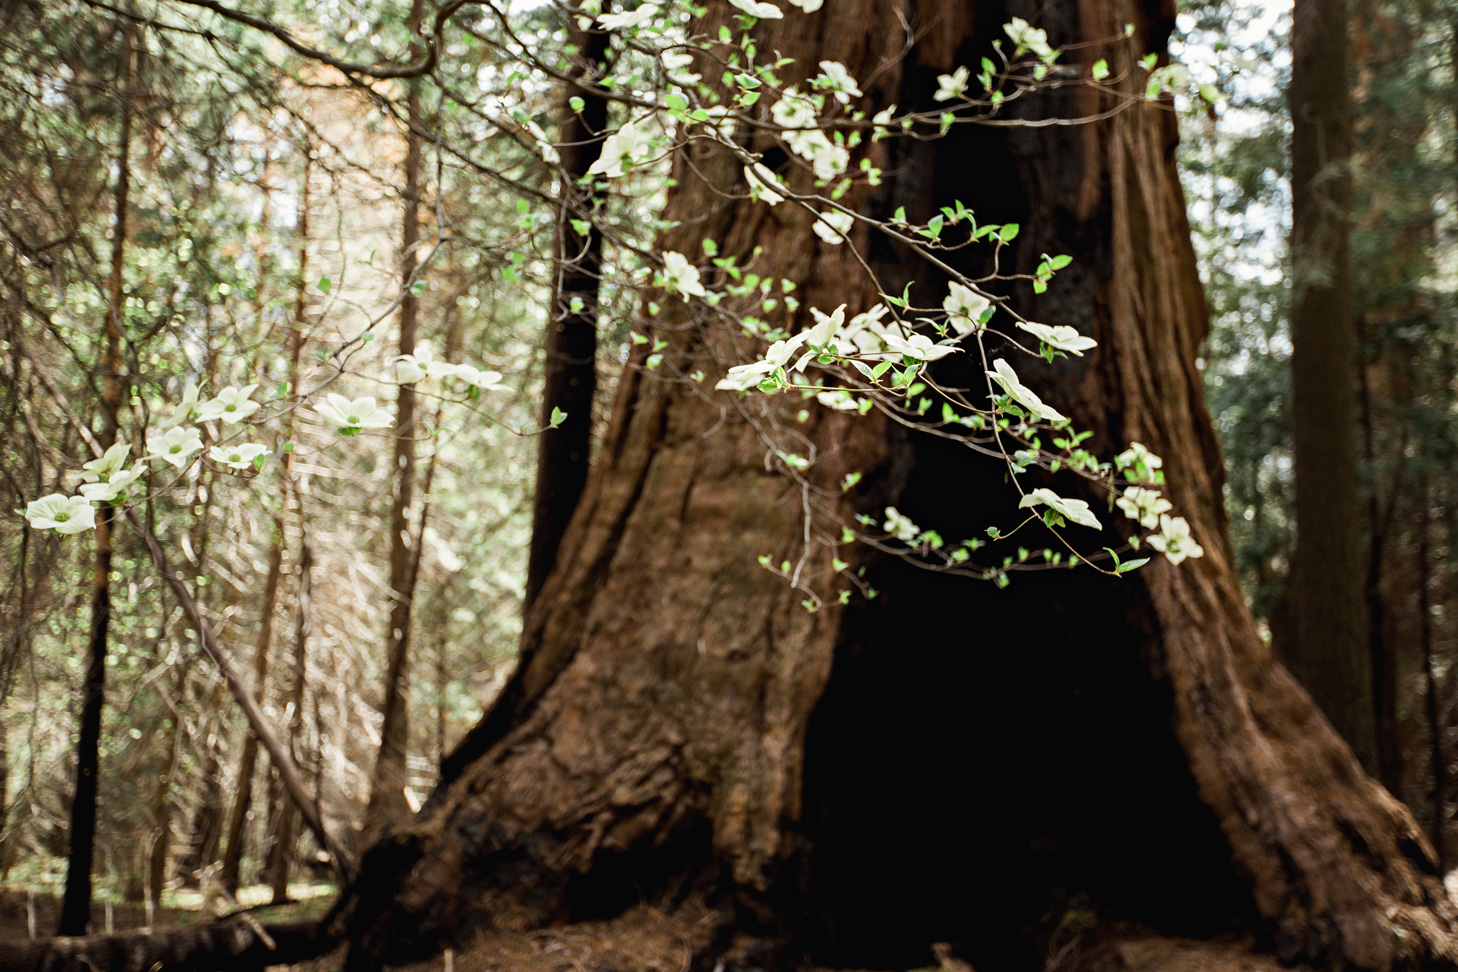 CindyGiovagnoli_Sequoia_Kings_Canyon_National_Park_spring_hiking_dogwood-014.jpg